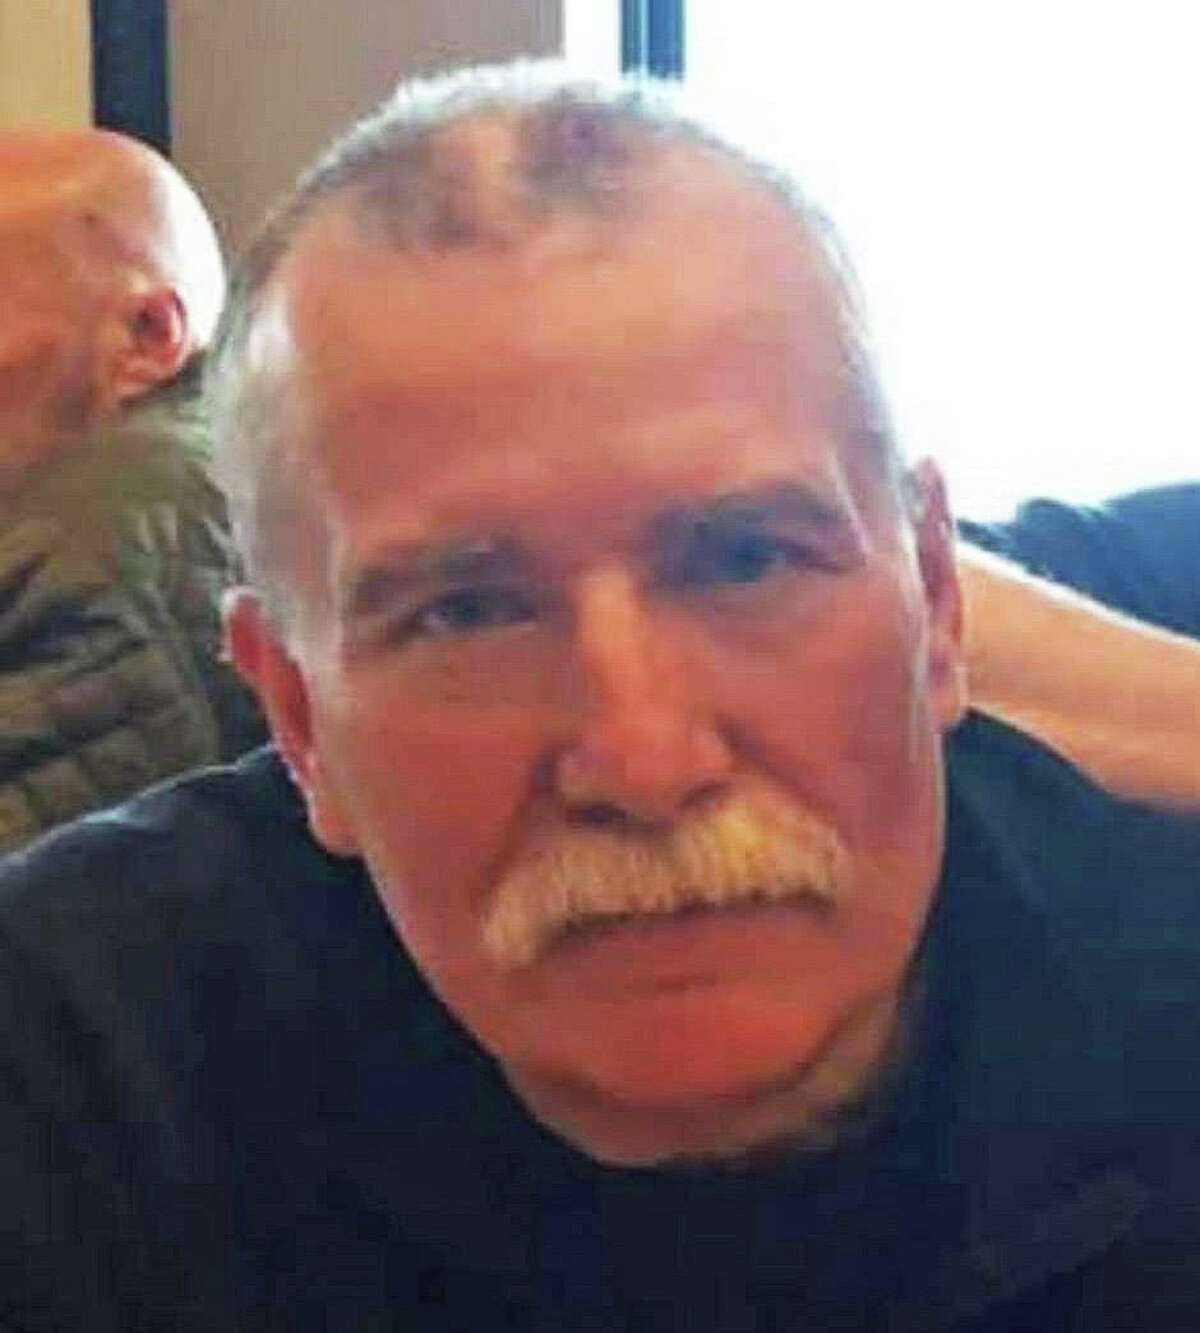 Corey Iodice, a tow operator from Iodice Family Tow, was killed in an accident on the Merritt Parkway in Trumbull on April 22, 2020.